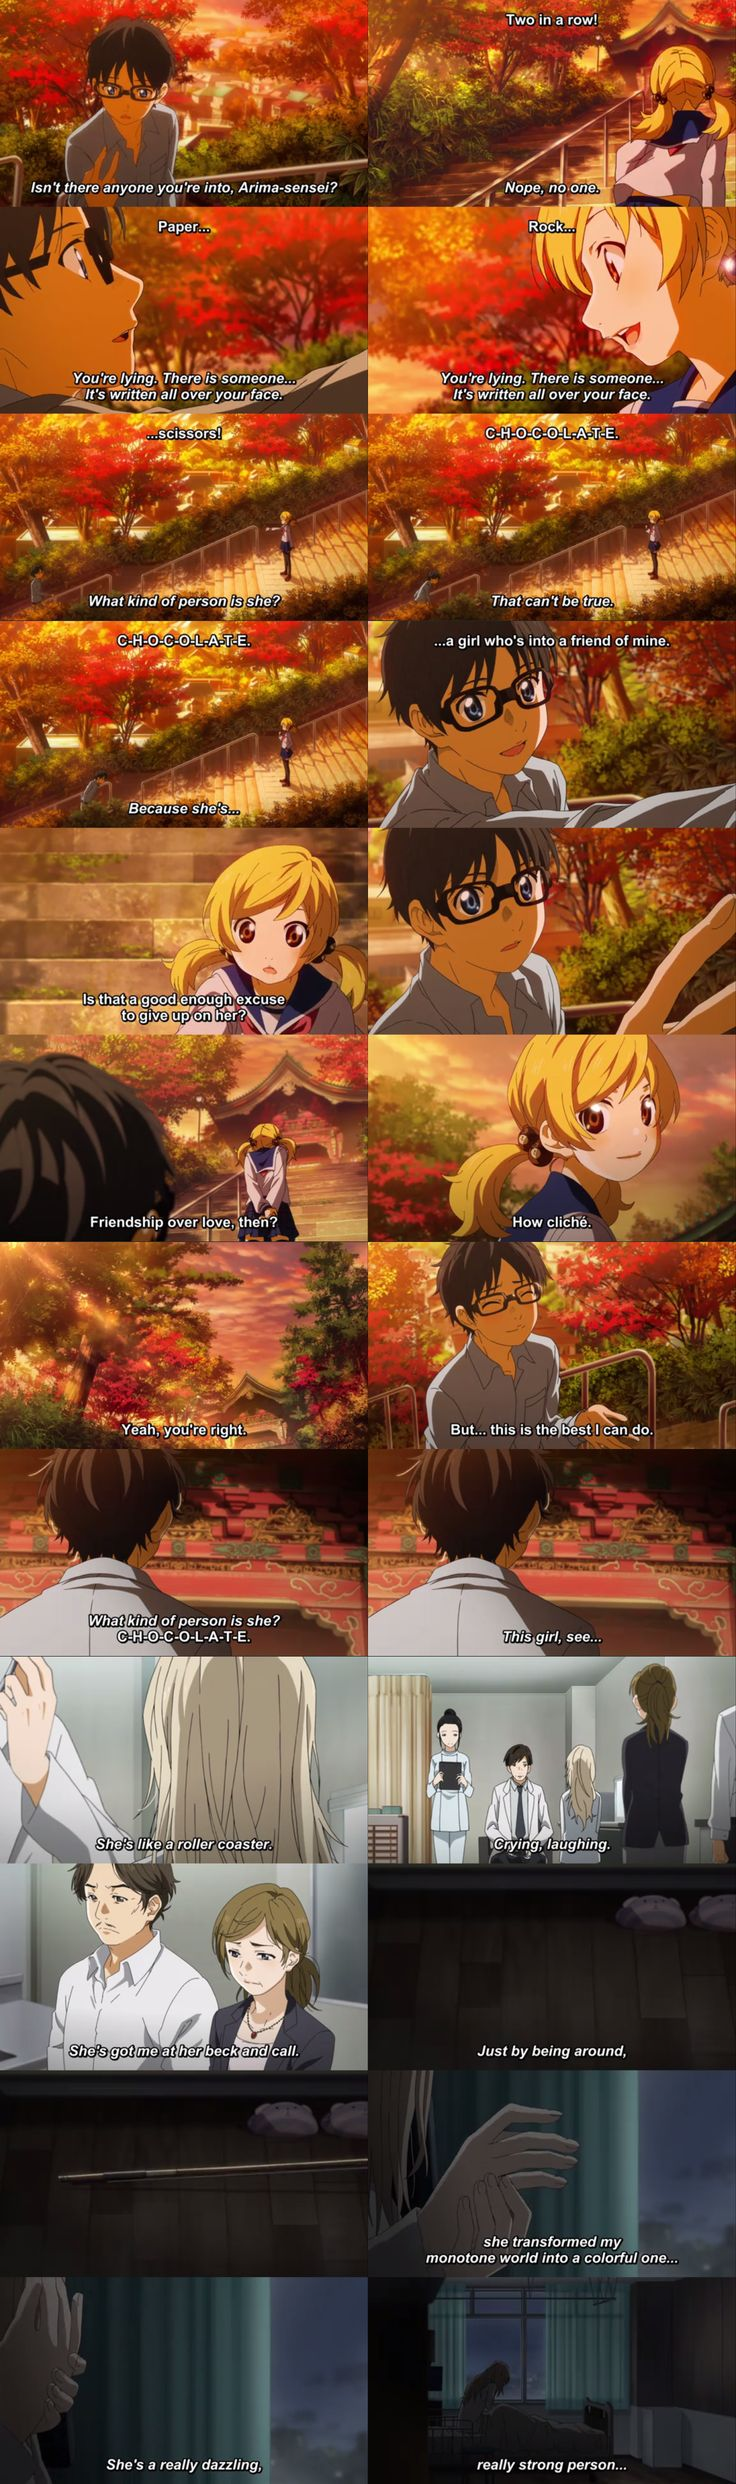 Please excuse me while I cry silently. T^T Your Lie in April